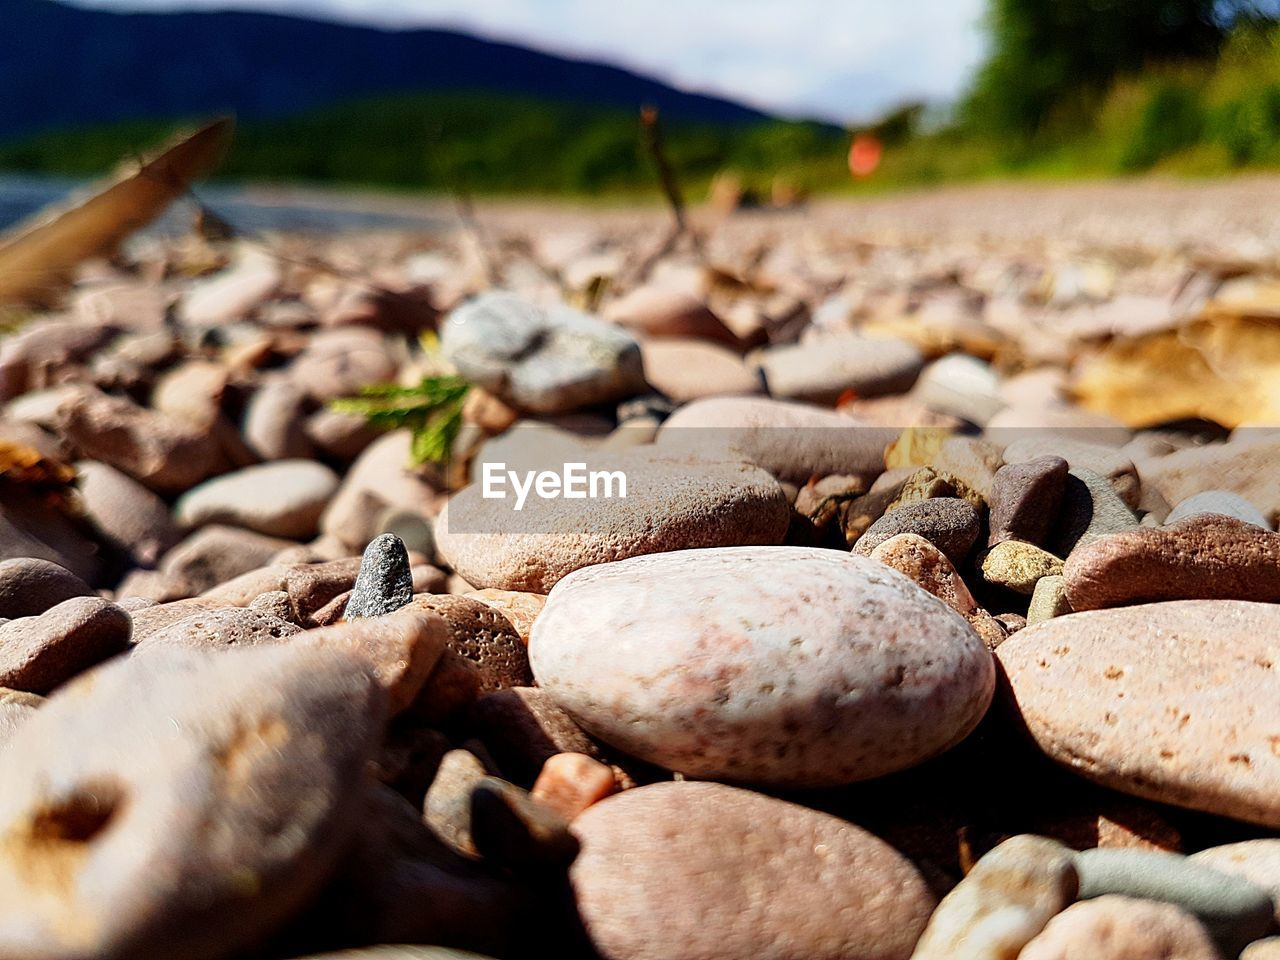 beach, nature, outdoors, day, shore, surface level, no people, pebble beach, pebble, beauty in nature, tranquility, sand, close-up, water, sky